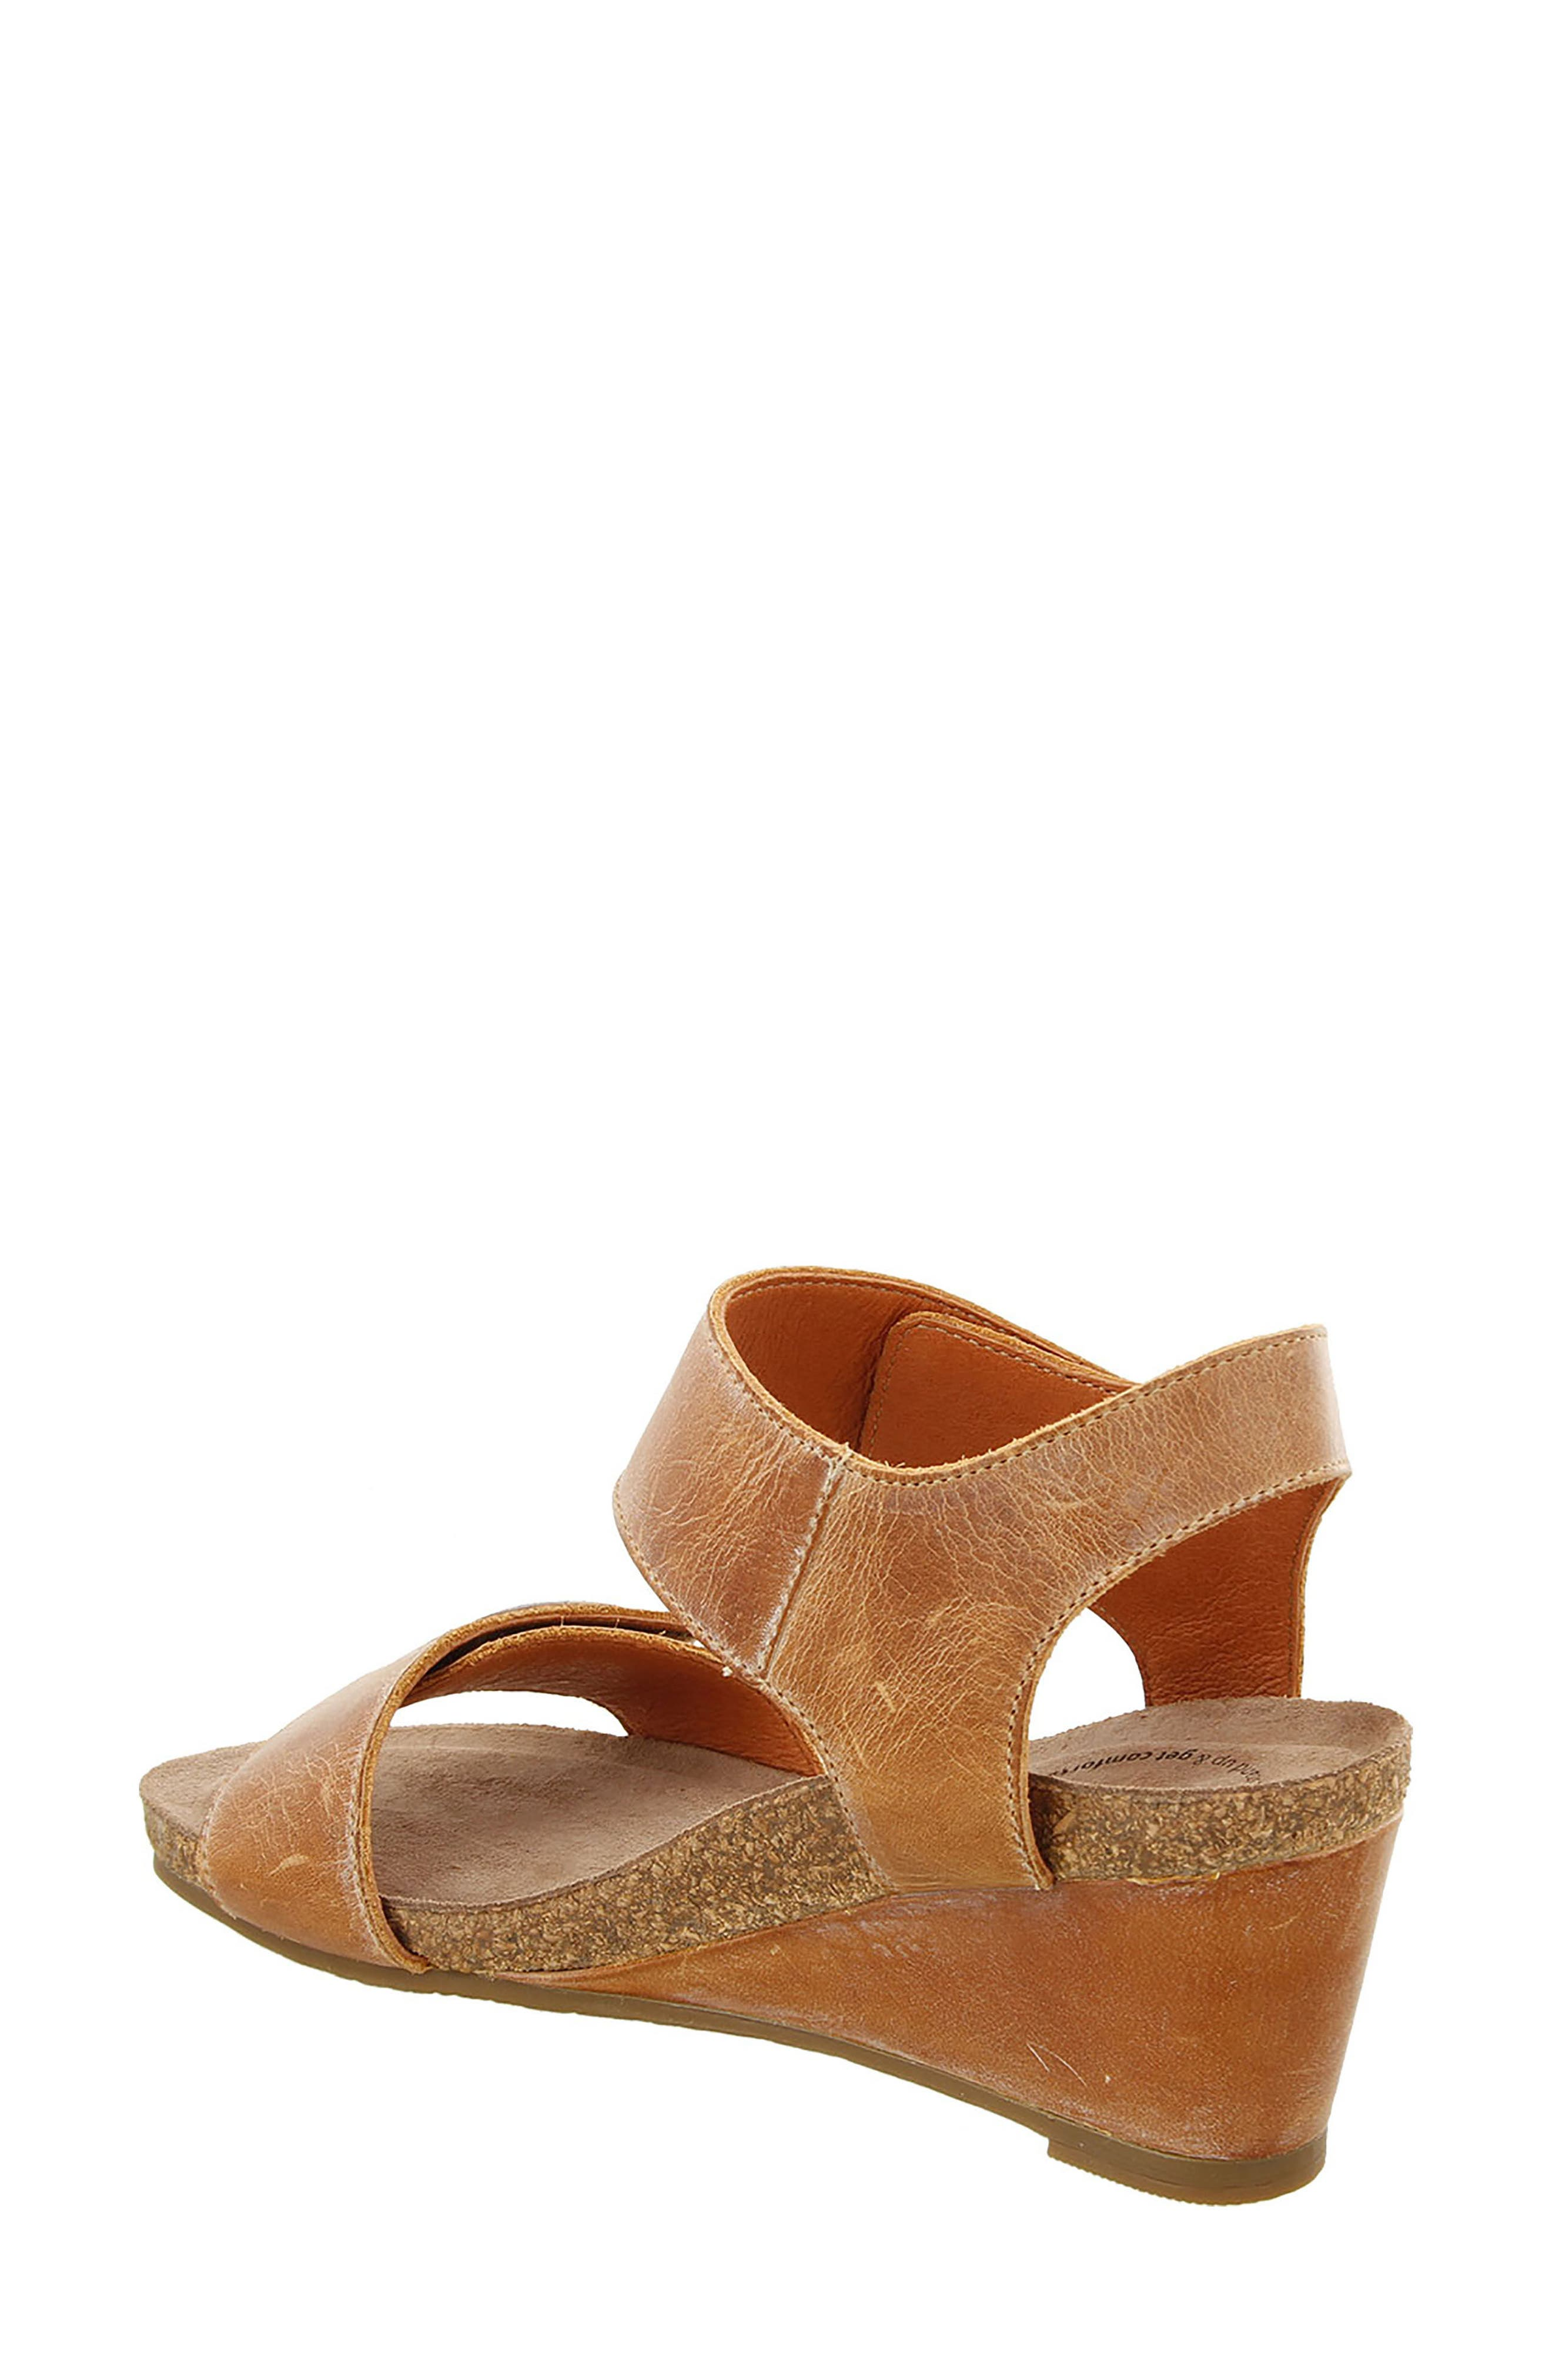 'Carousel 2' Wedge Sandal,                             Alternate thumbnail 2, color,                             Camel Suede